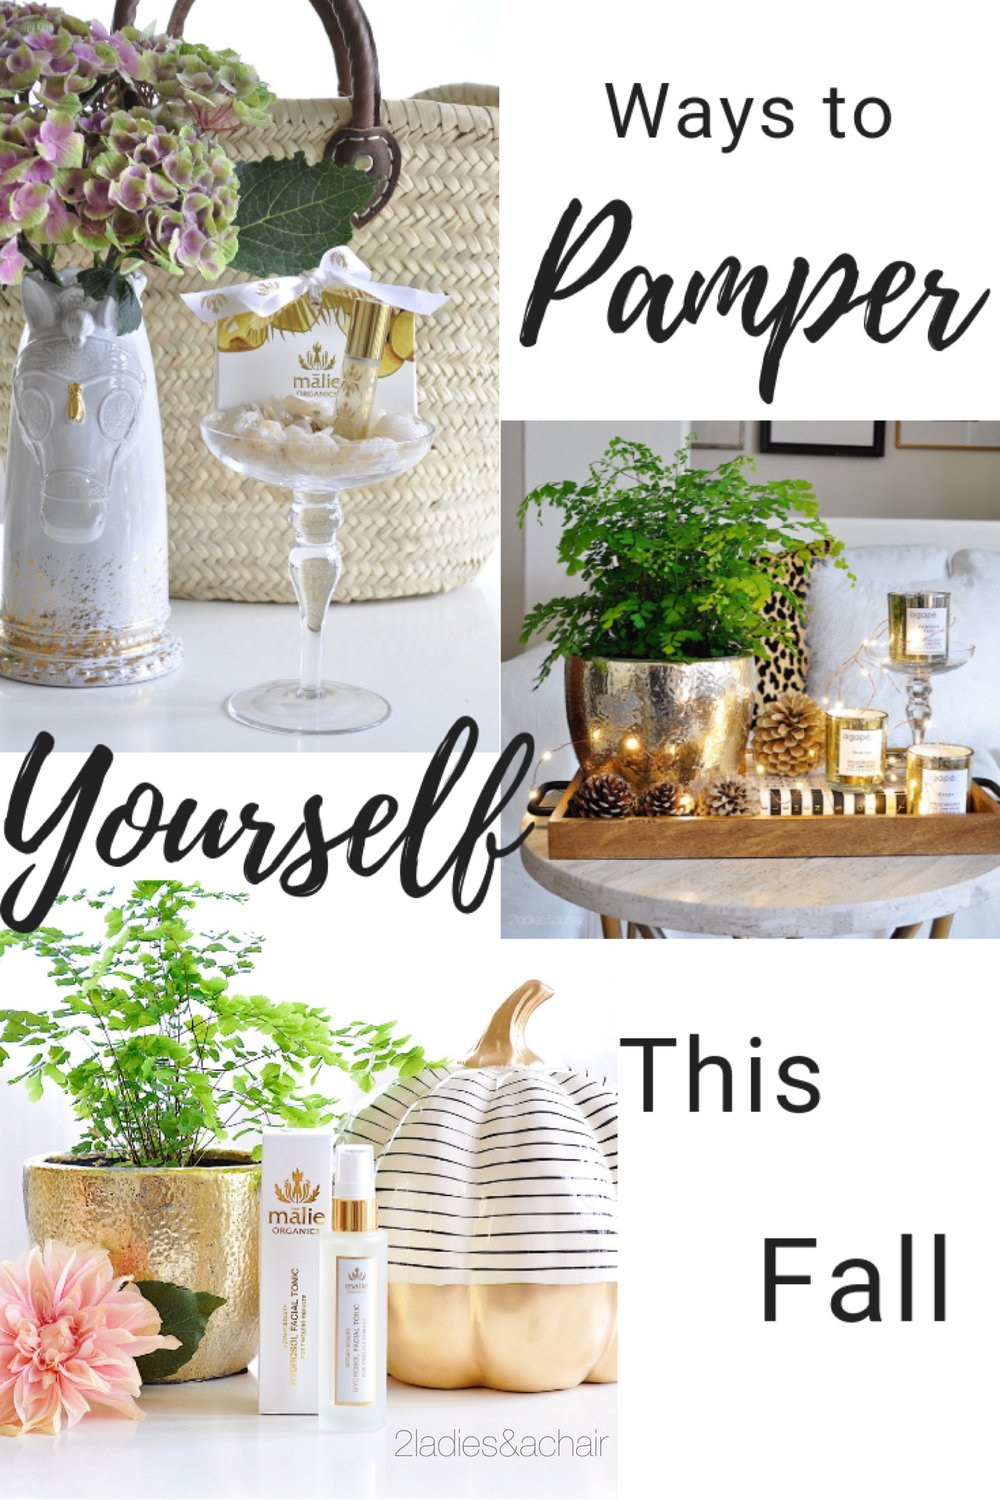 pamper yourself this fall IMG_9377.JPG